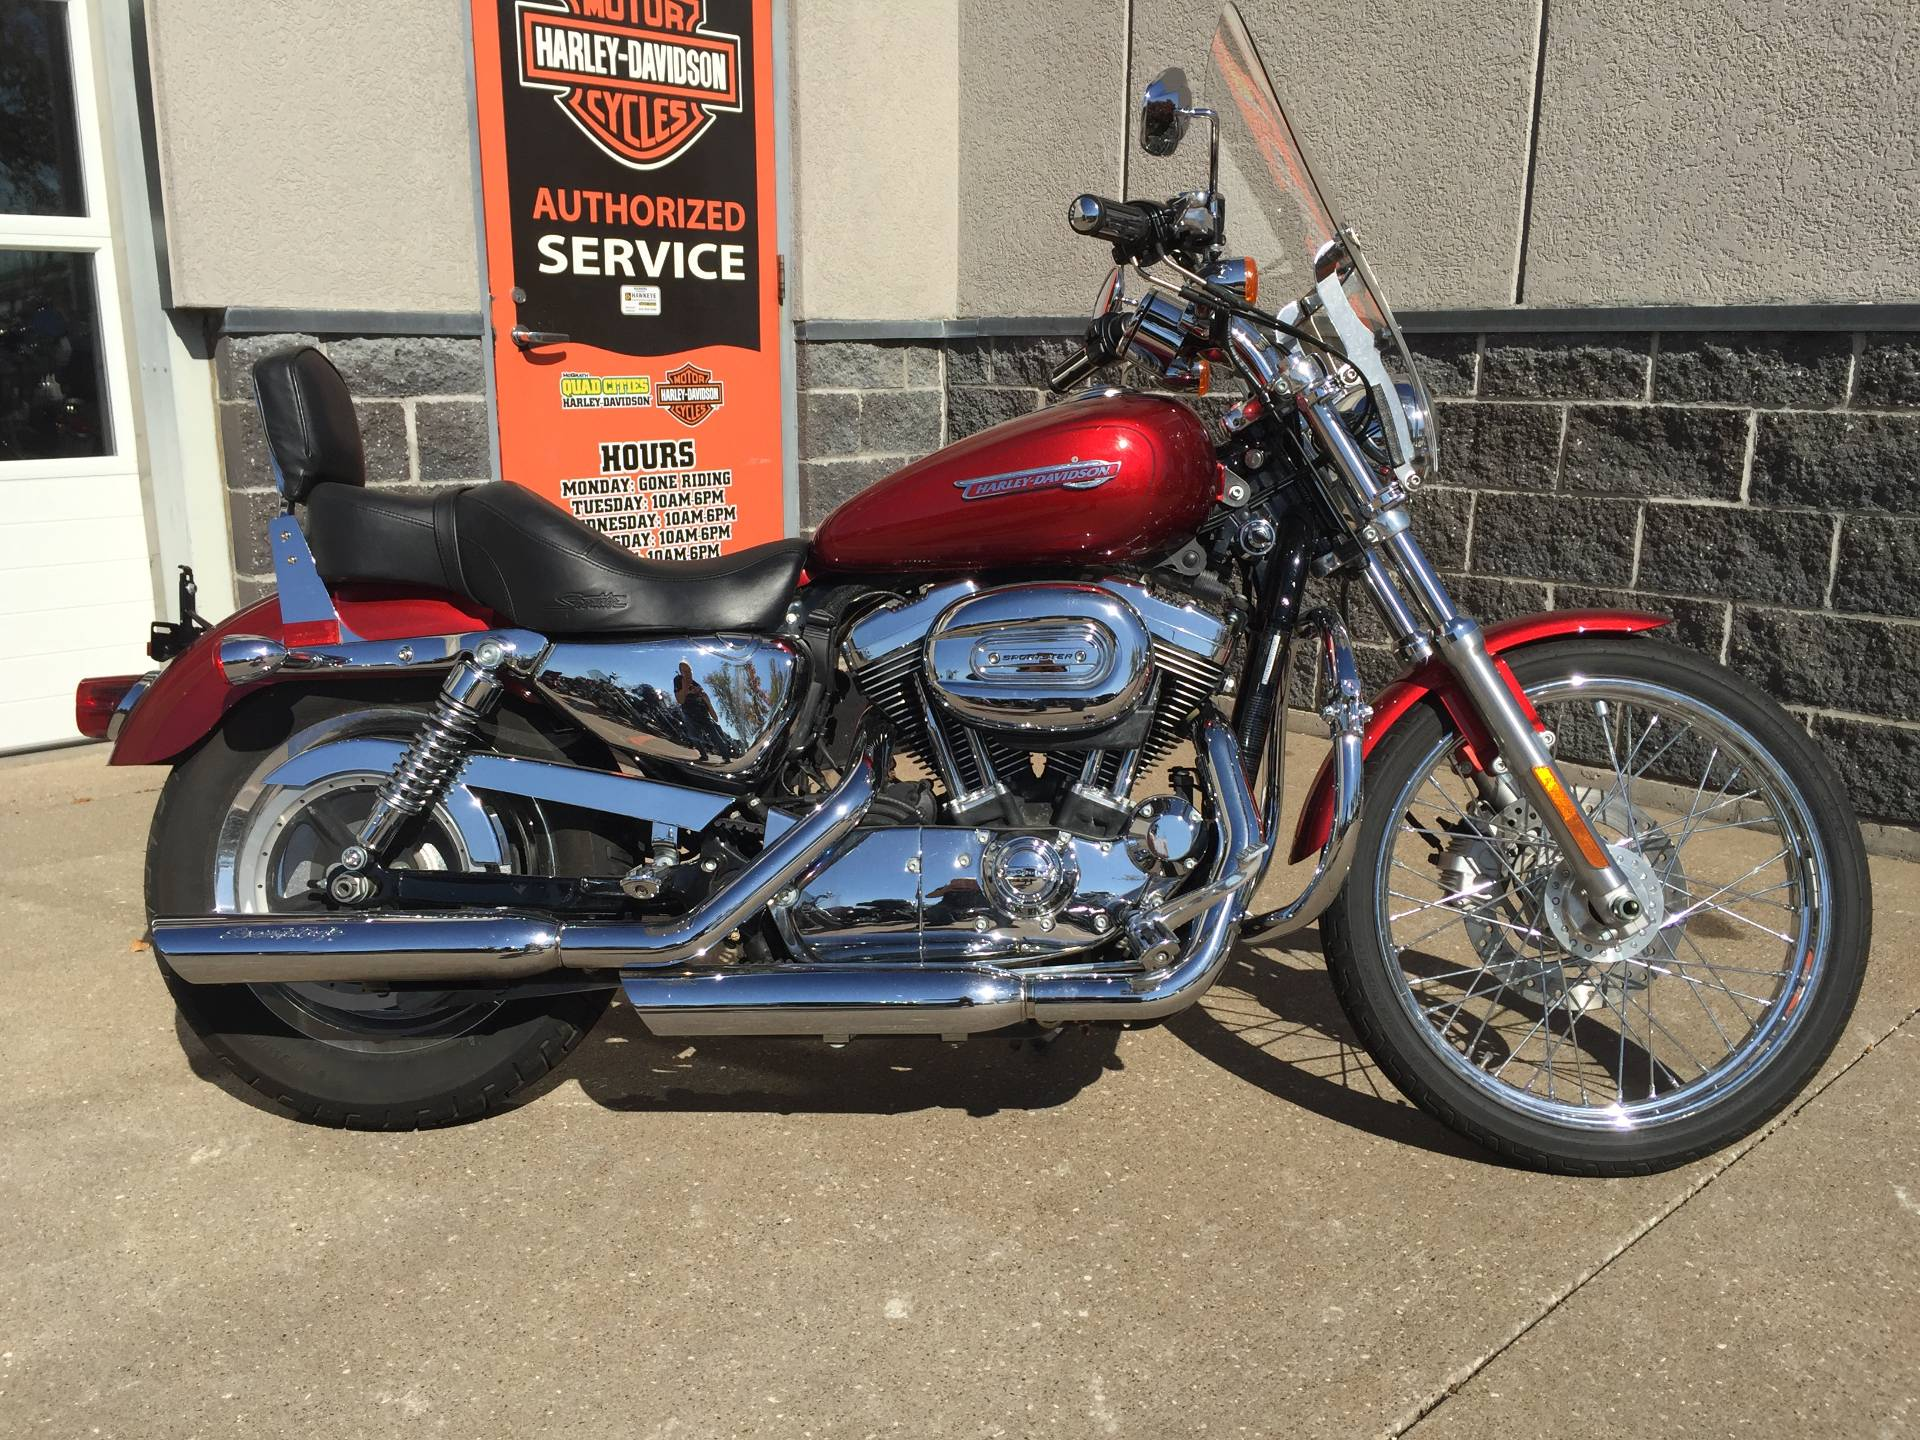 2008 Harley-Davidson XL1200C in Davenport, Iowa - Photo 1